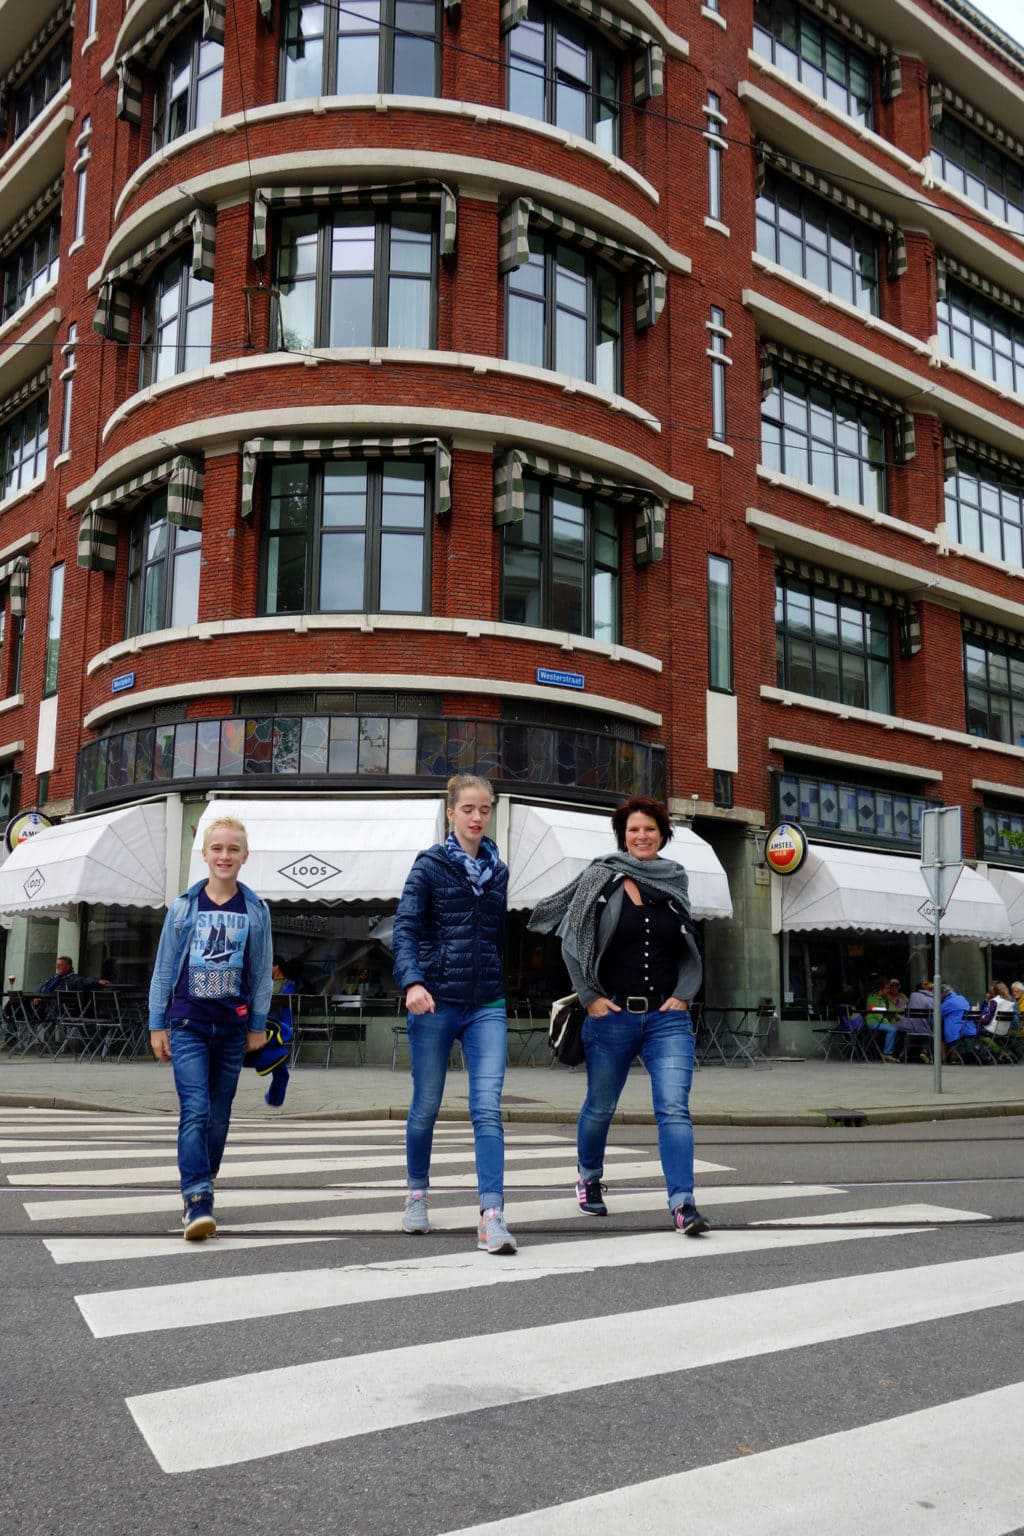 Cruise Ship Engine Room: Things To Do In Rotterdam With Kids